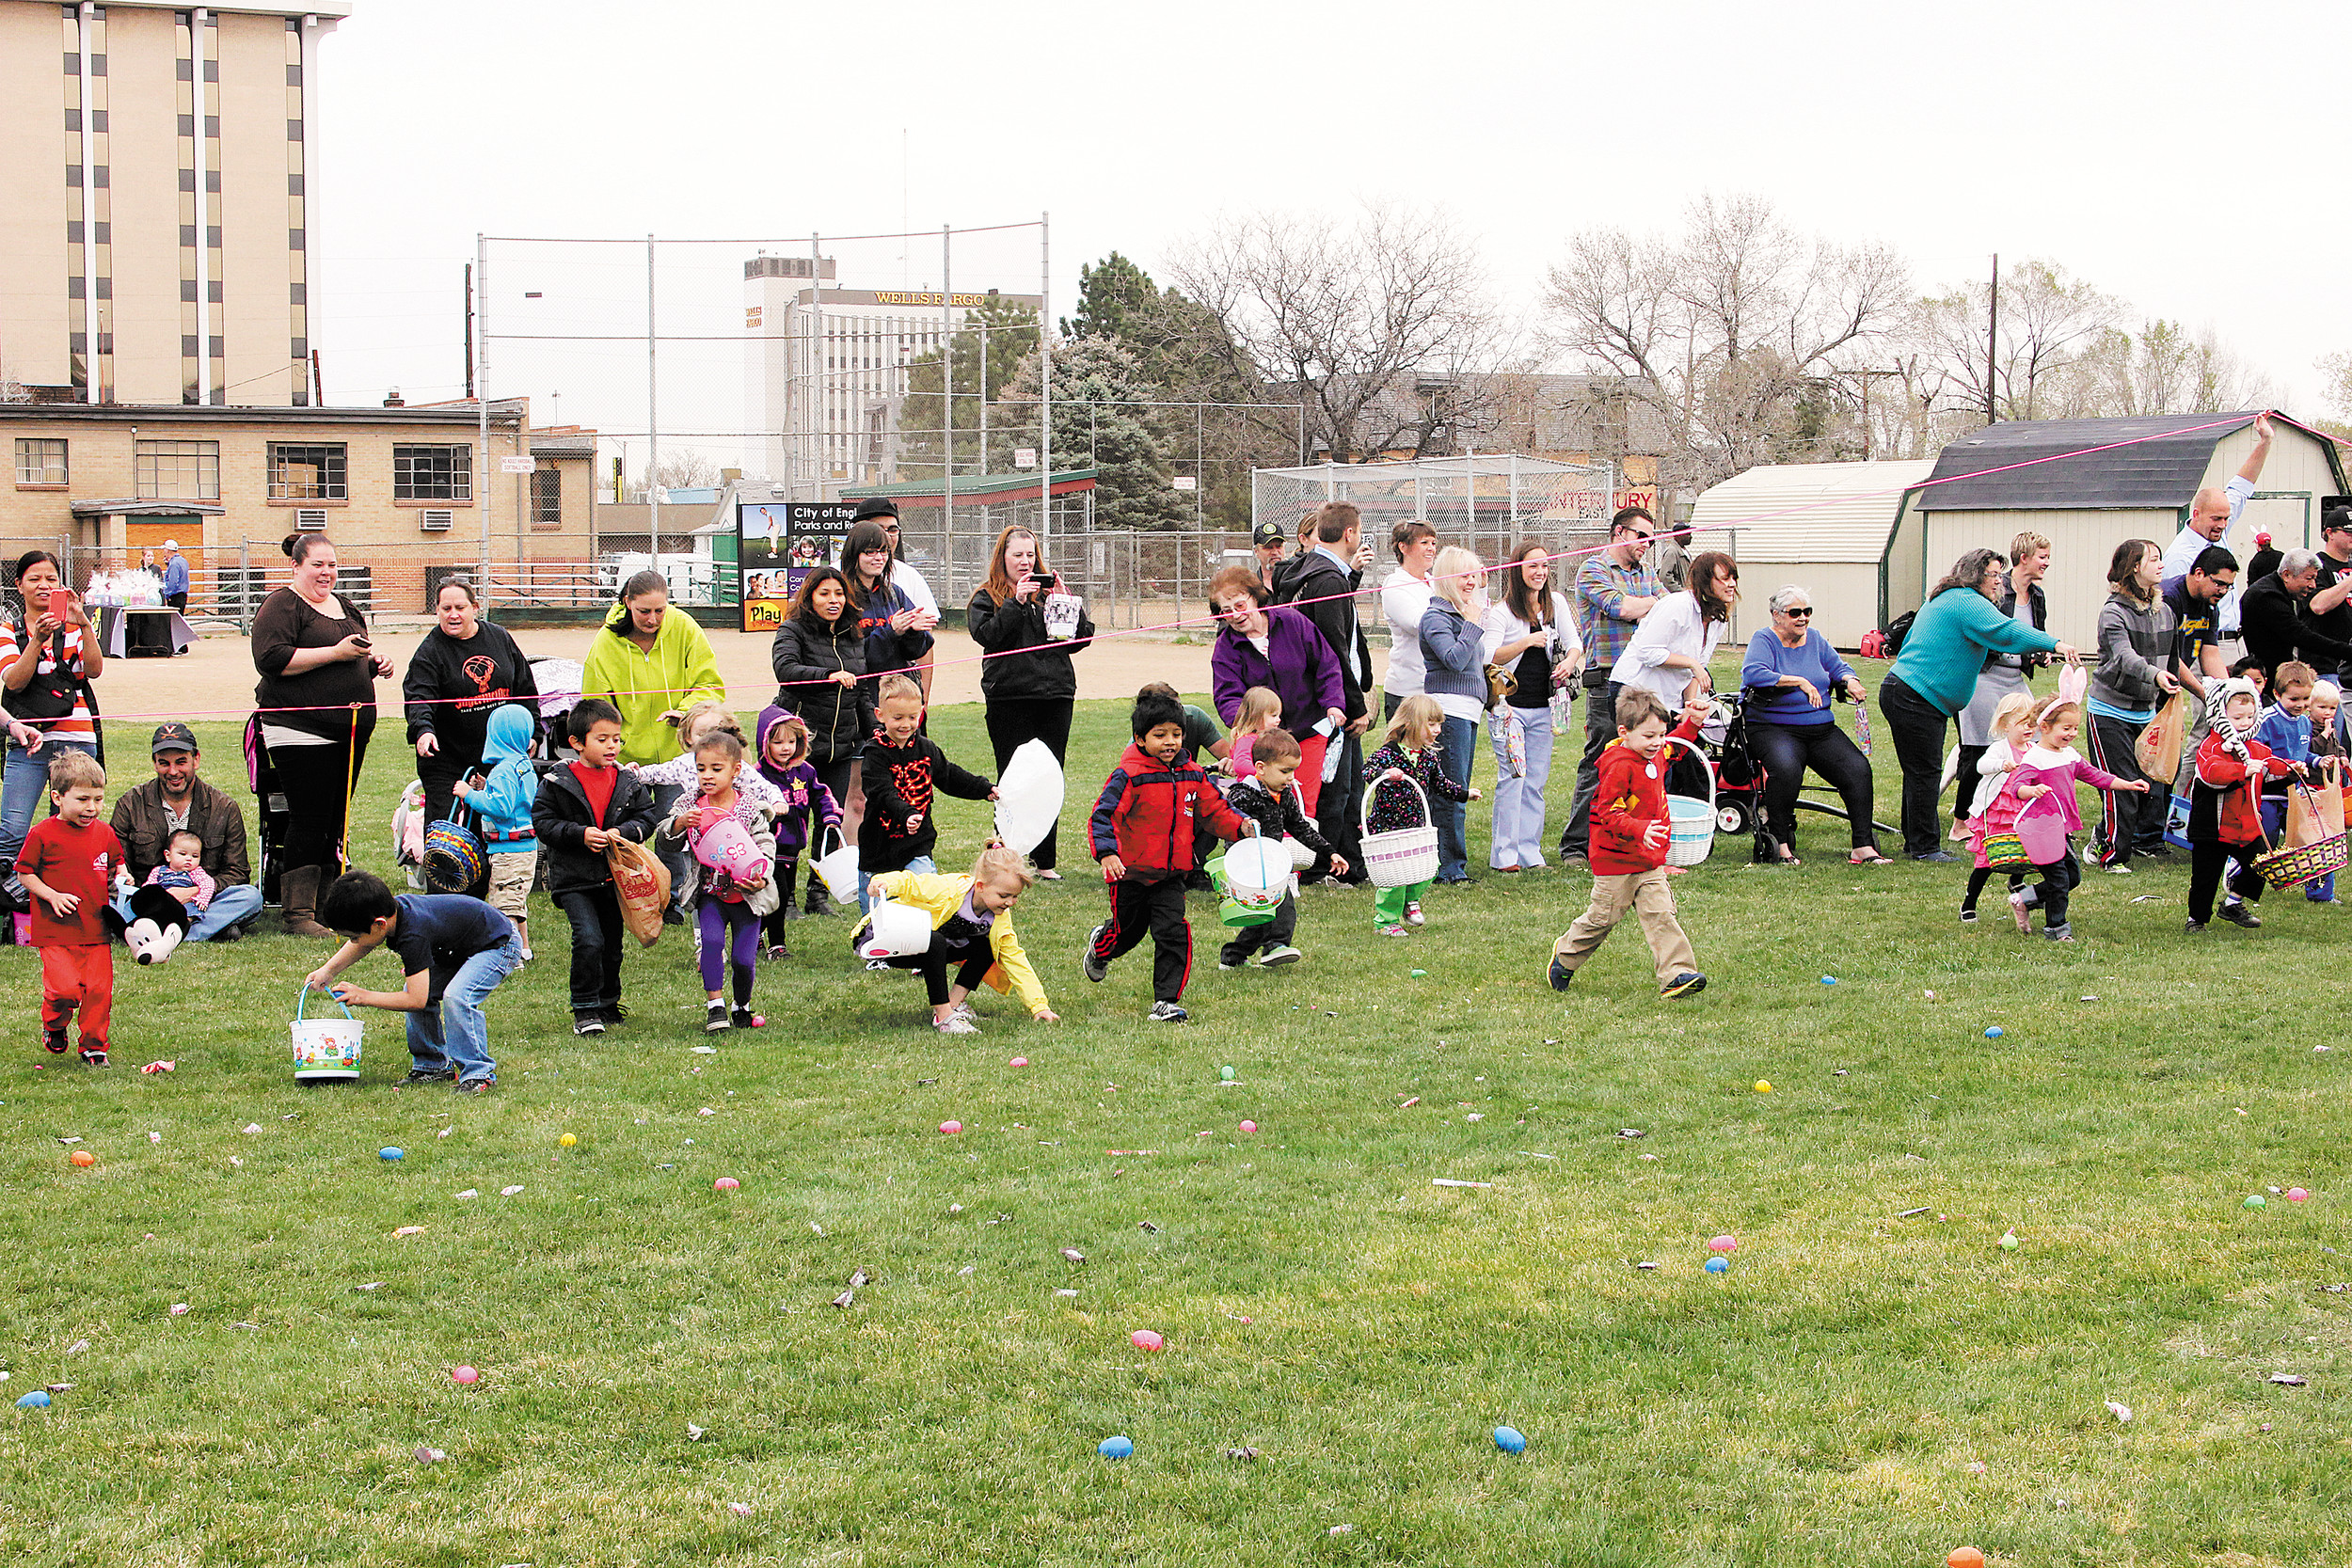 The starting horn sounded and children rush to scoop up goodies at the April 12 Englewood Egg Scramble. There were a lot of kids and the area was picked clean in a matter of minutes. Photo by Tom Munds